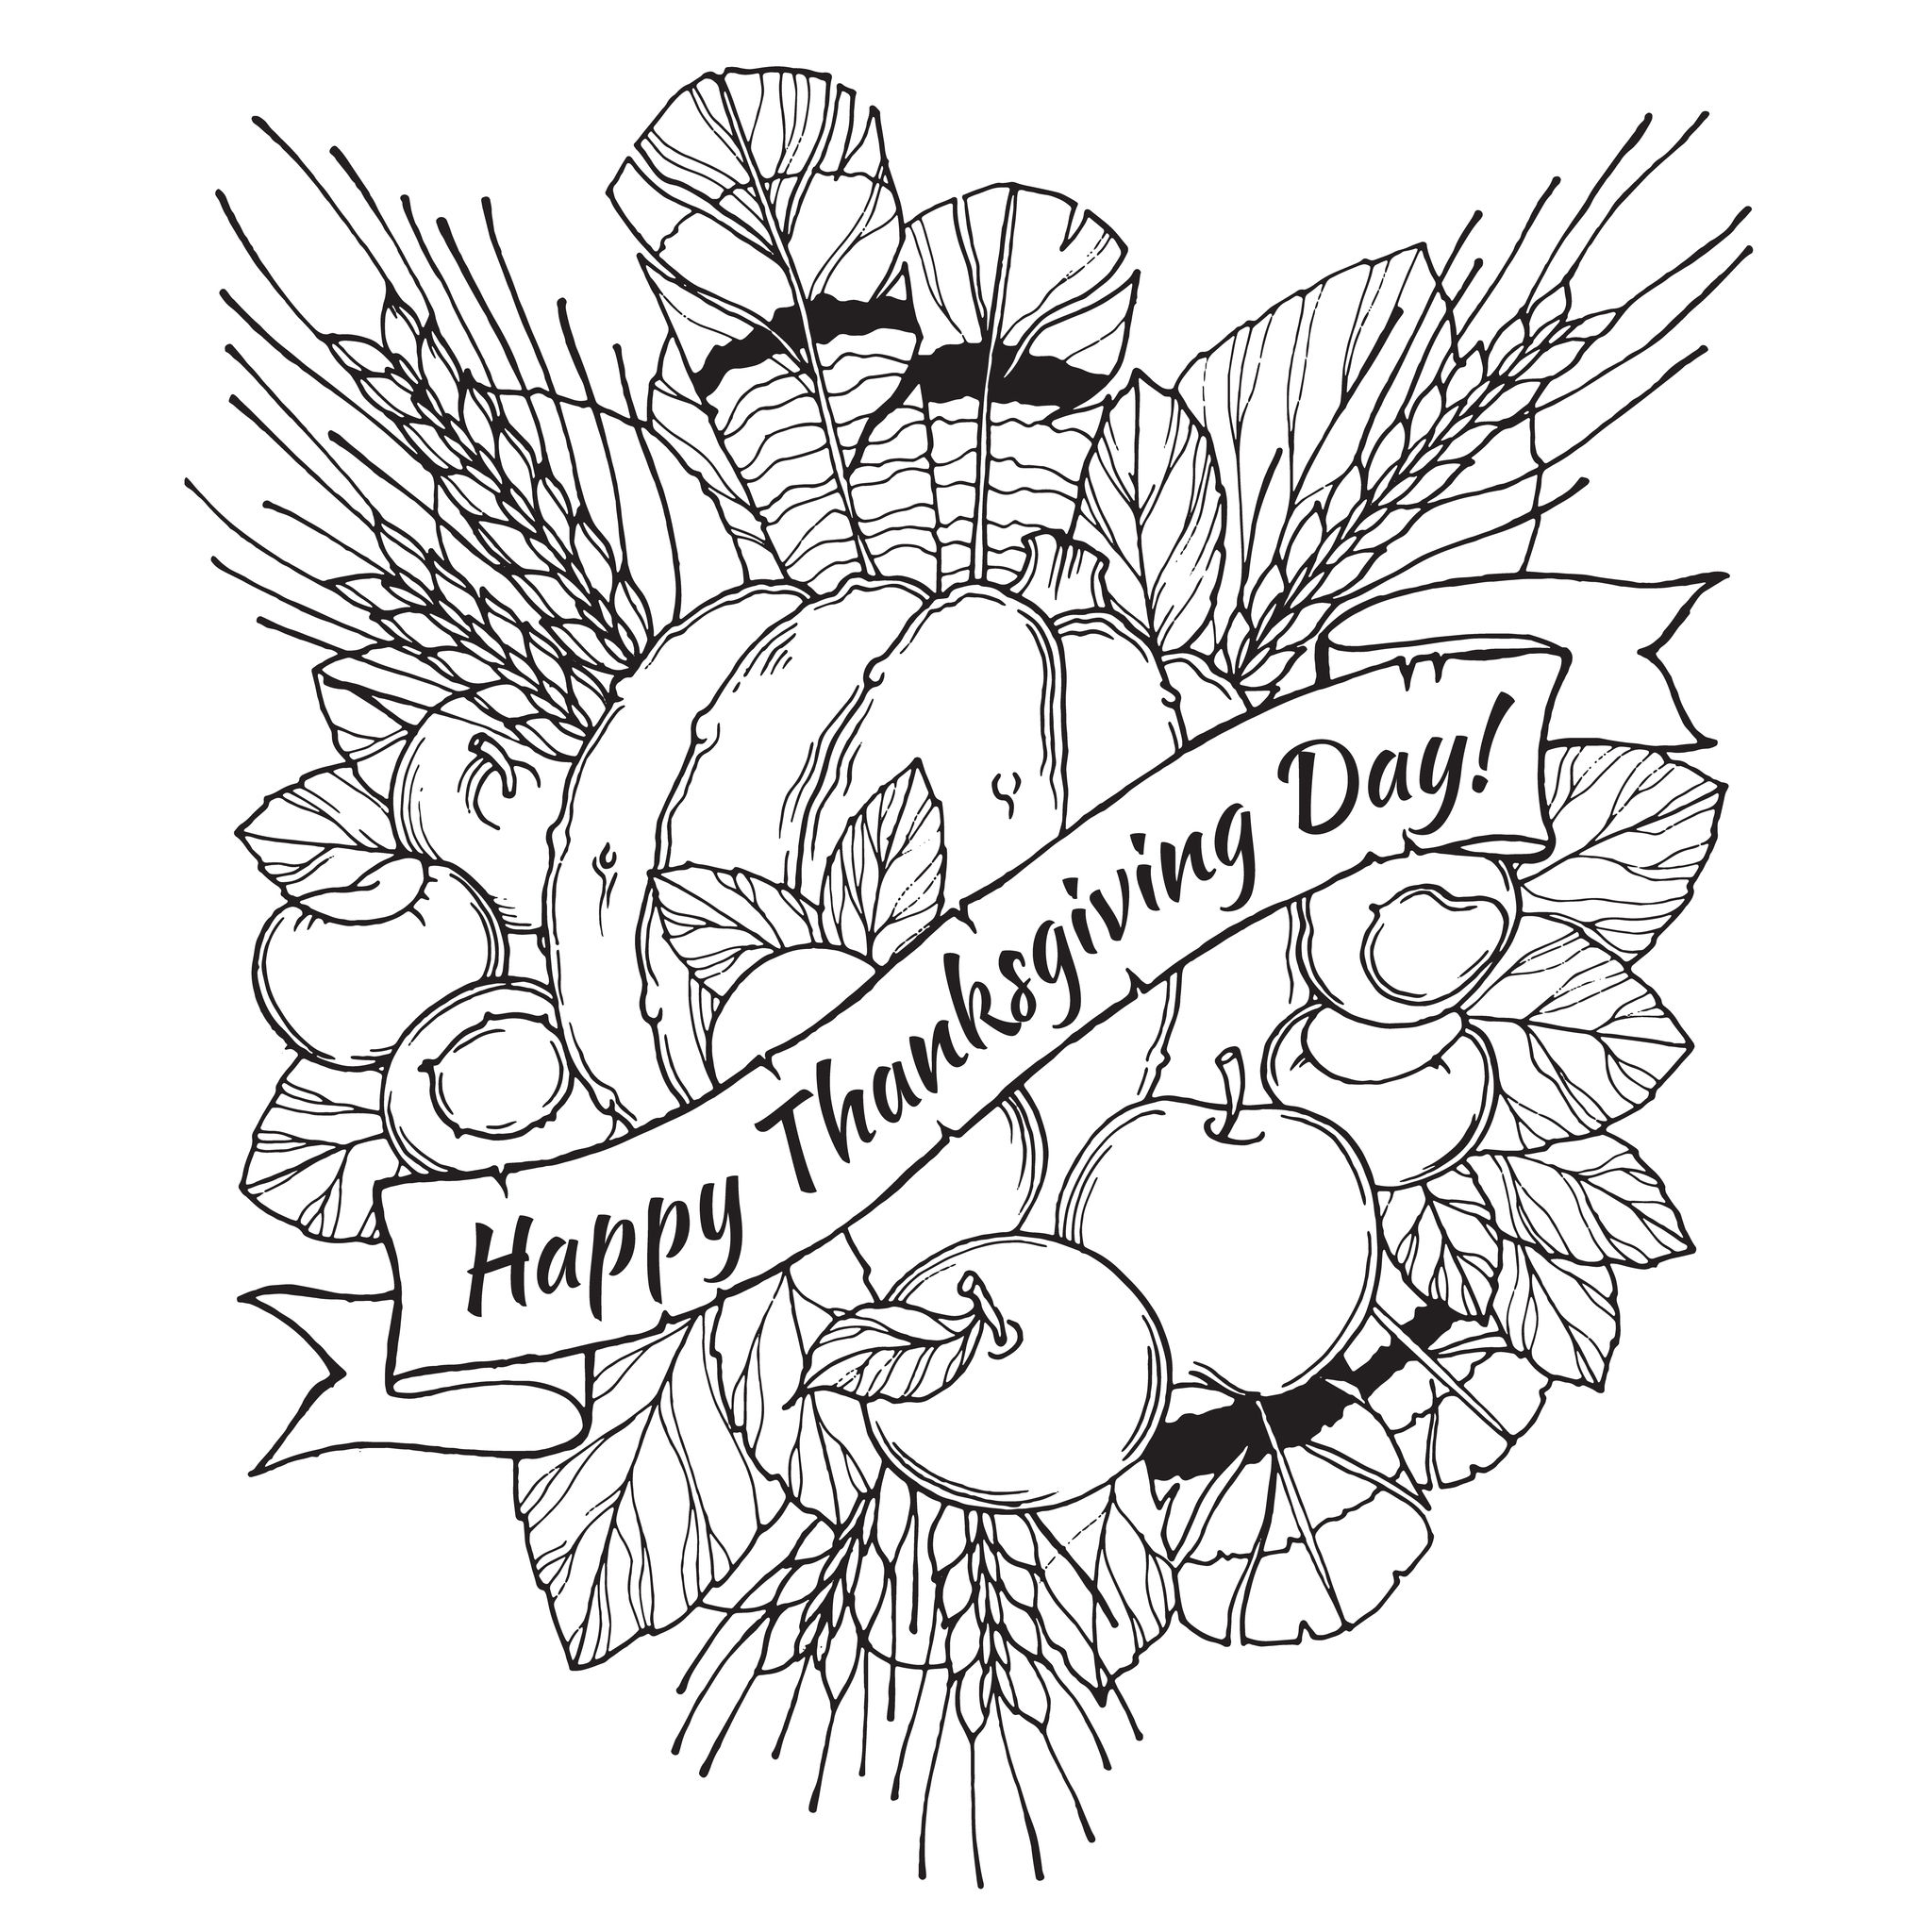 Free coloring pages for adults thanksgiving -  Oloring On Points For Adults Animals Coloring Pages For Adults More Free Coloring Pages